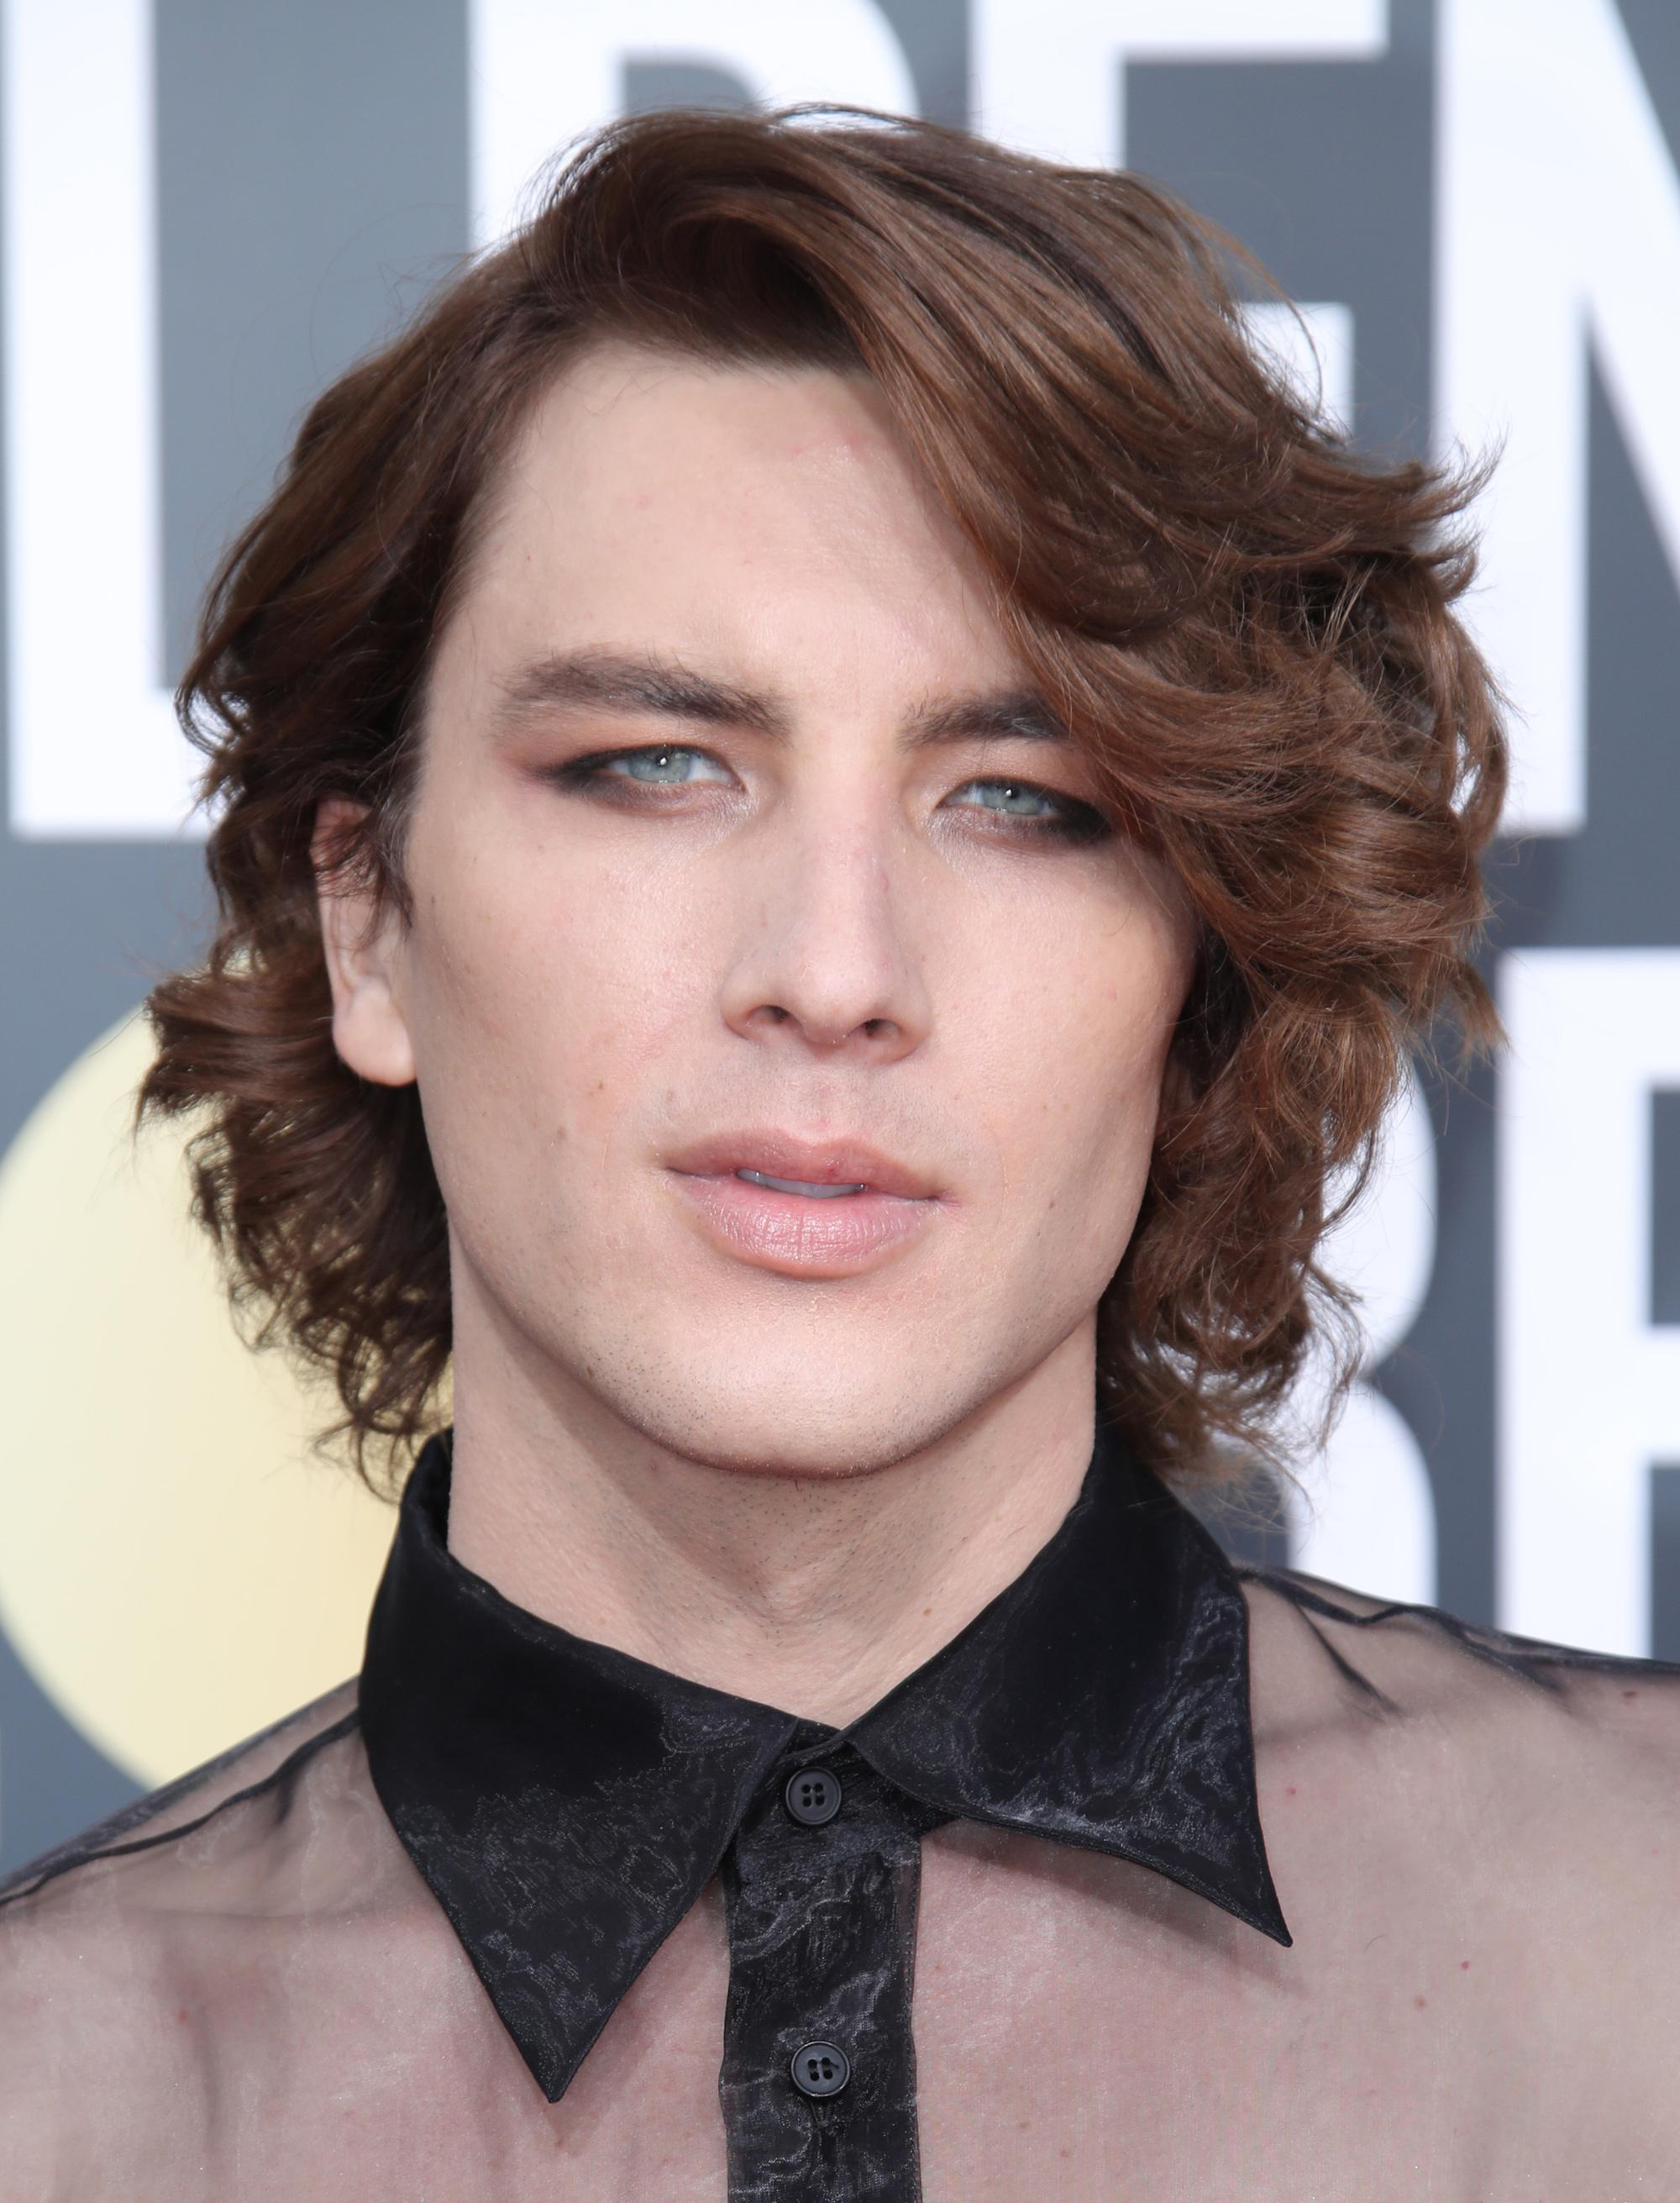 Golden Globes 2019: Close-up of actor Cody Fern with wavy brown swooped mid-length hair, wearing a sheer black shirt with smoky eye makeup